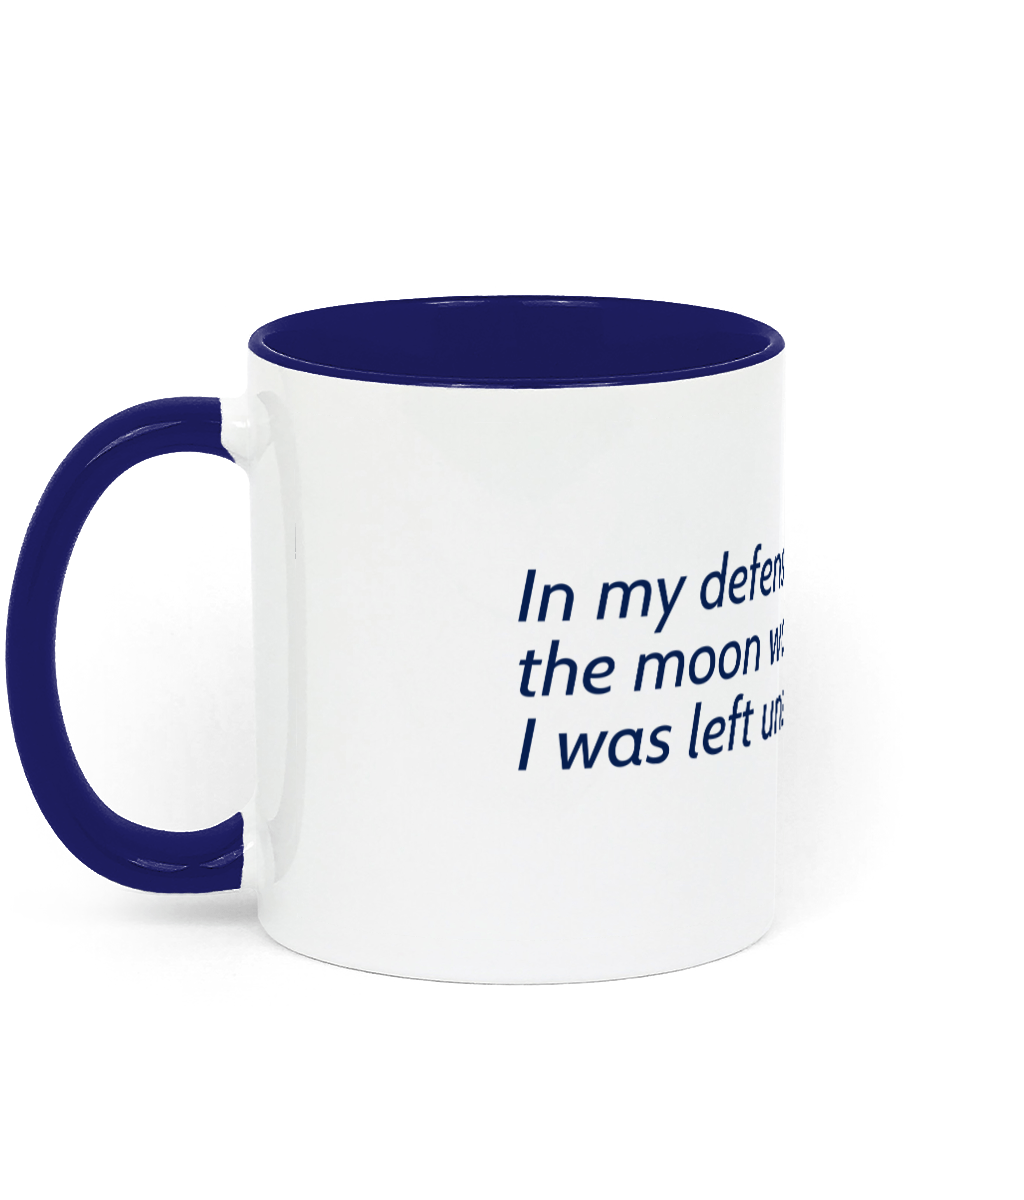 Two Toned Ceramic Mug In my defense, the moon was full and I was left unsupervised. Two-toned mug